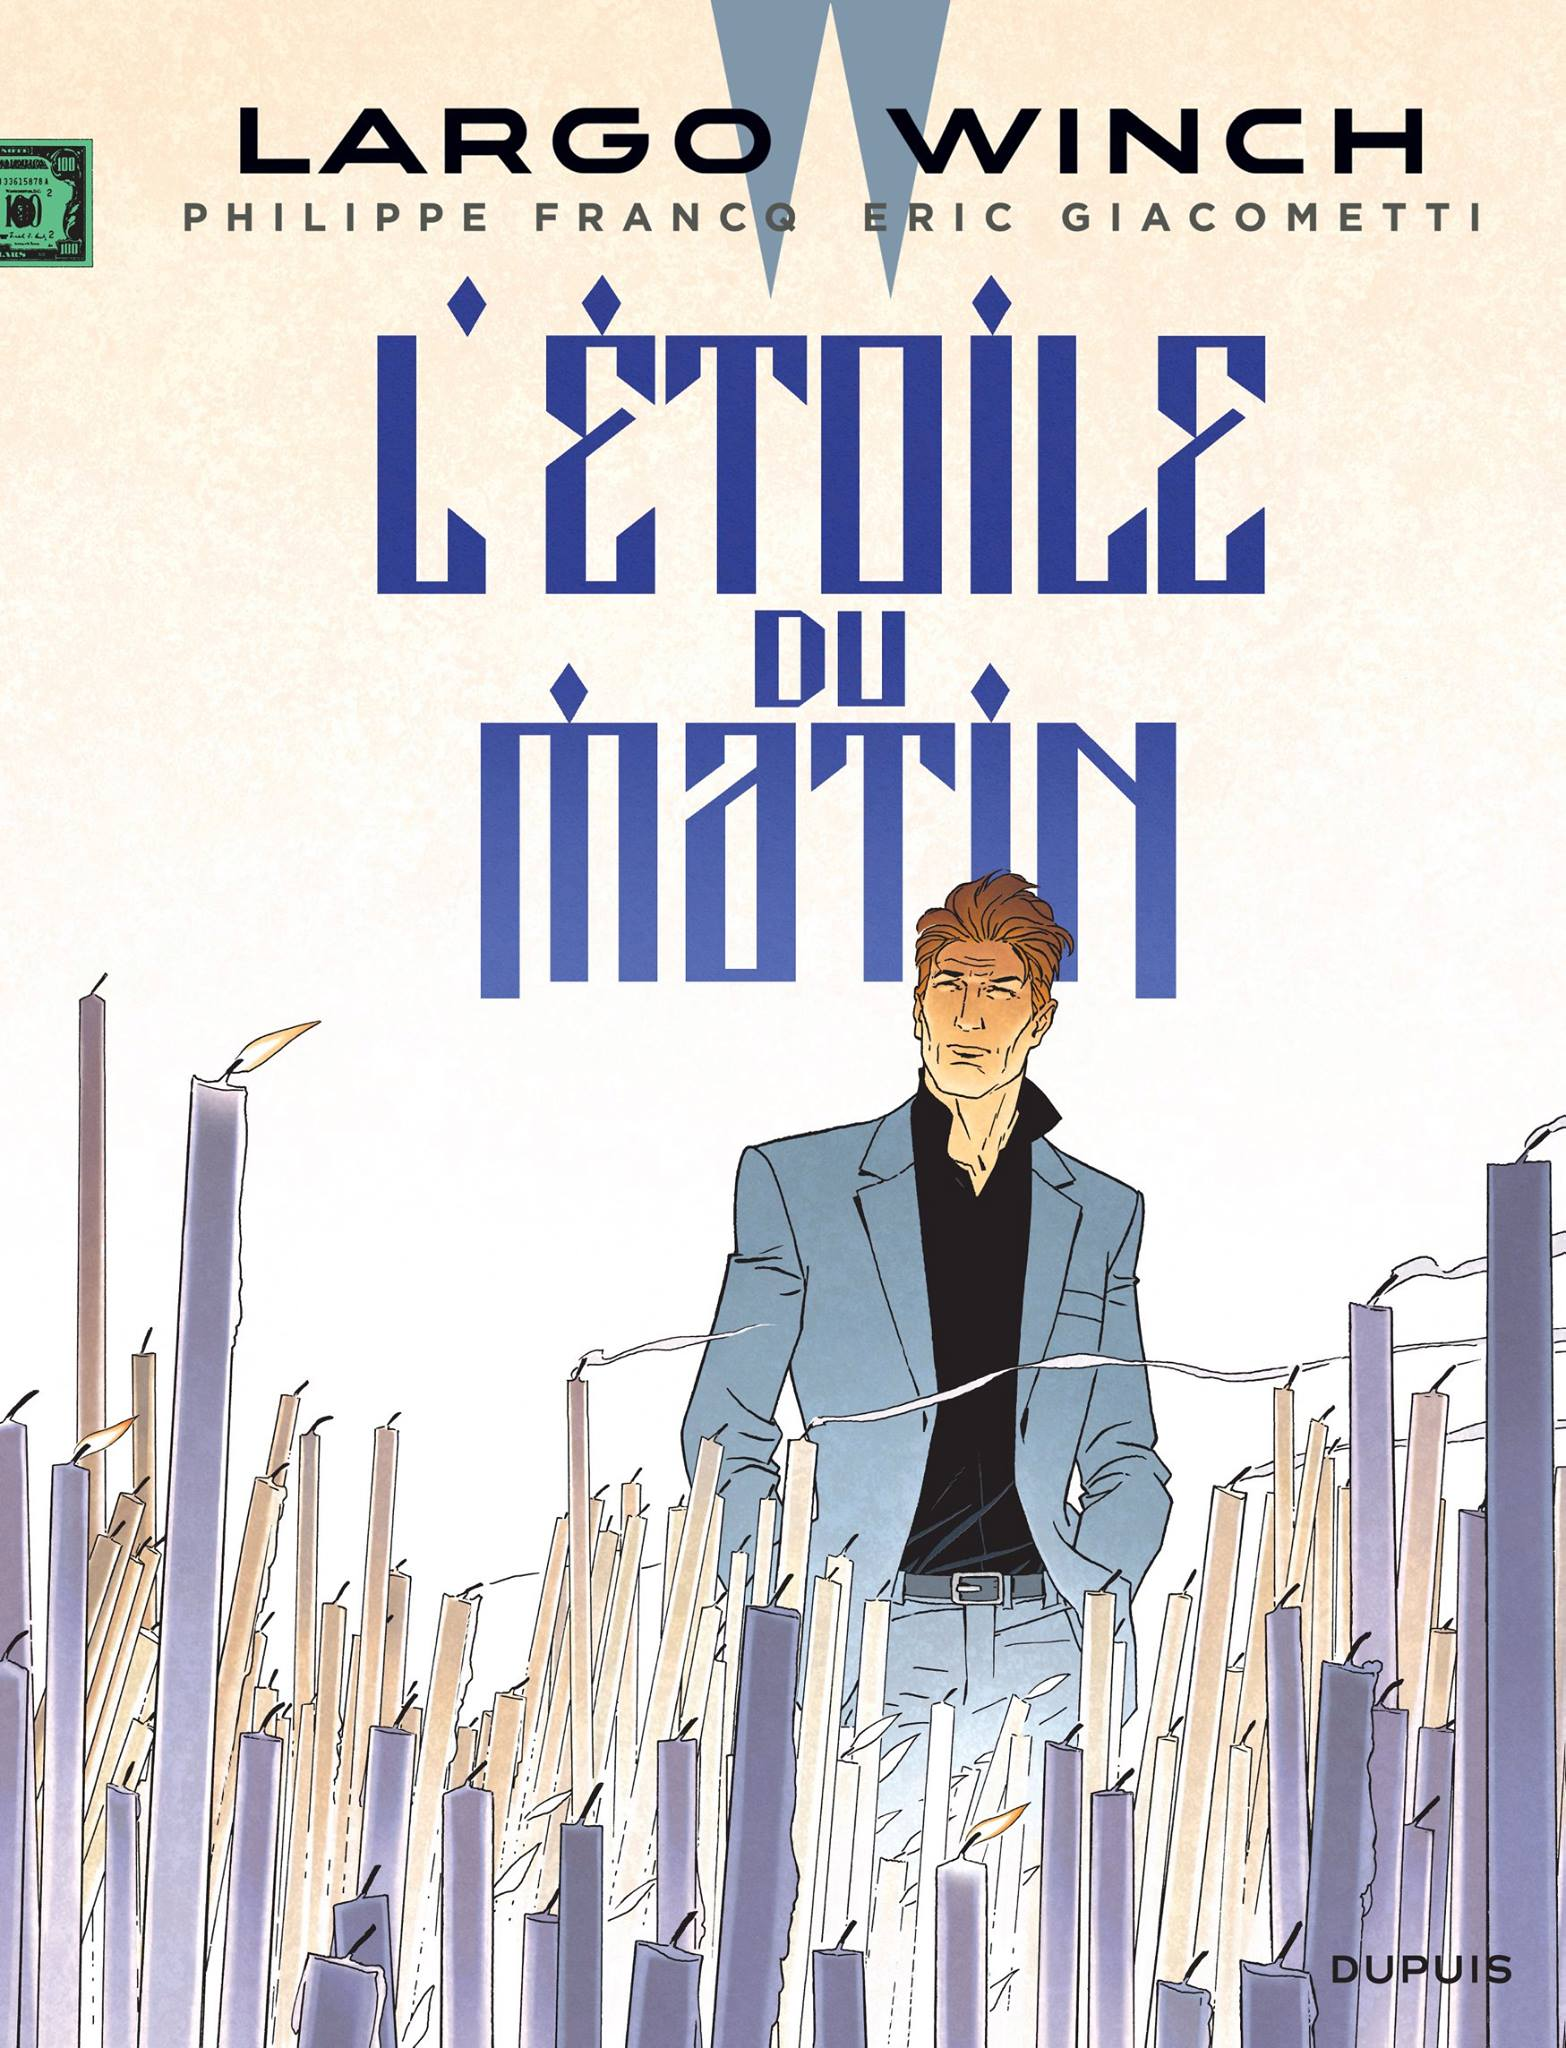 largo winch l'étoile du matin cover